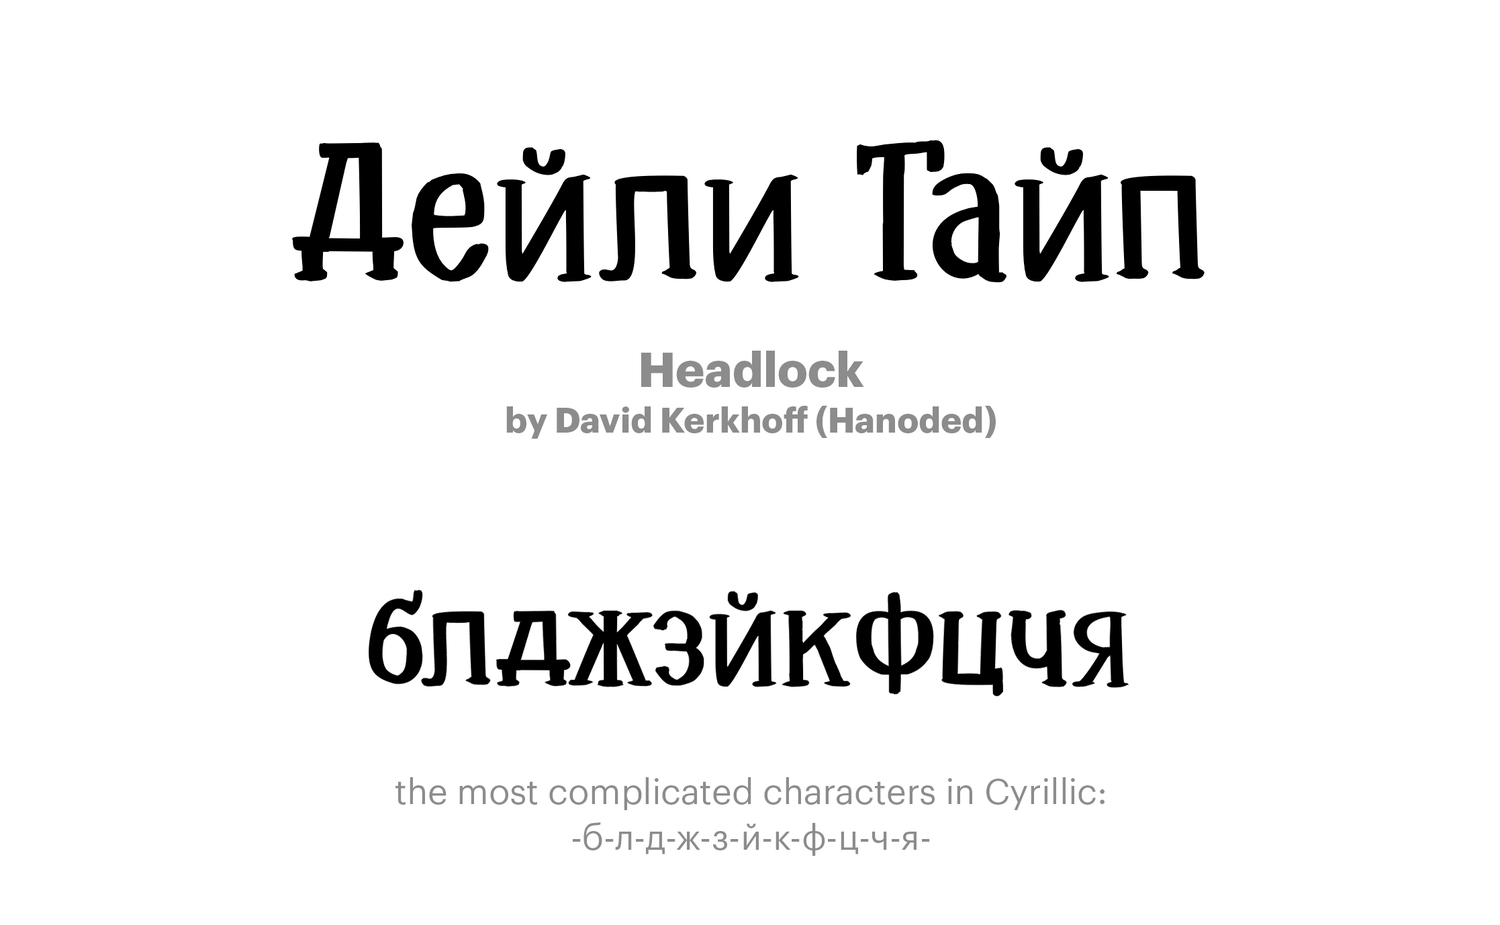 Headlock-by-David-Kerkhoff-(Hanoded)